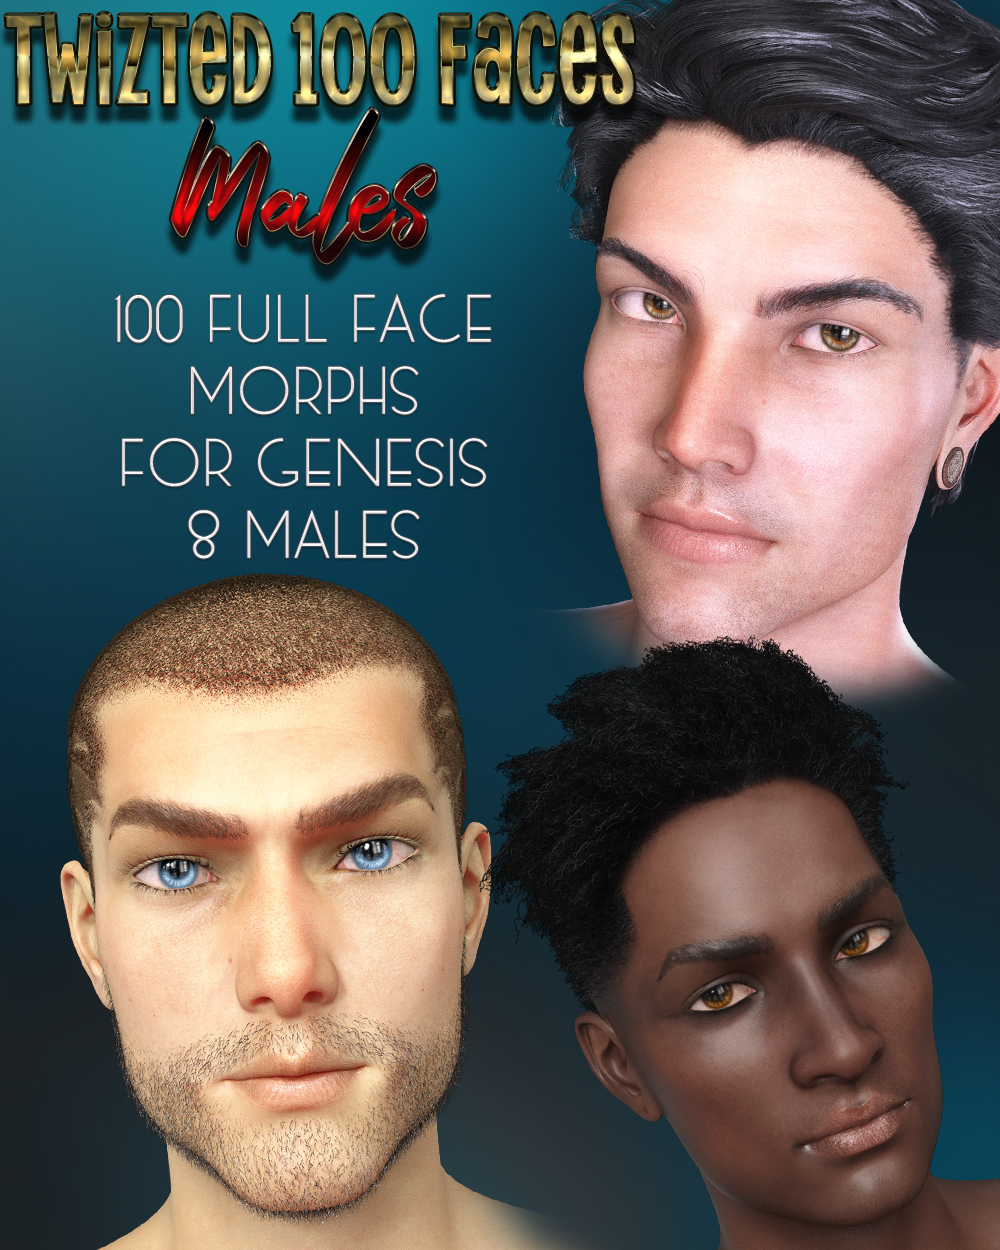 Twizted 100 Faces Males for Genesis 8 Males by TwiztedMetal